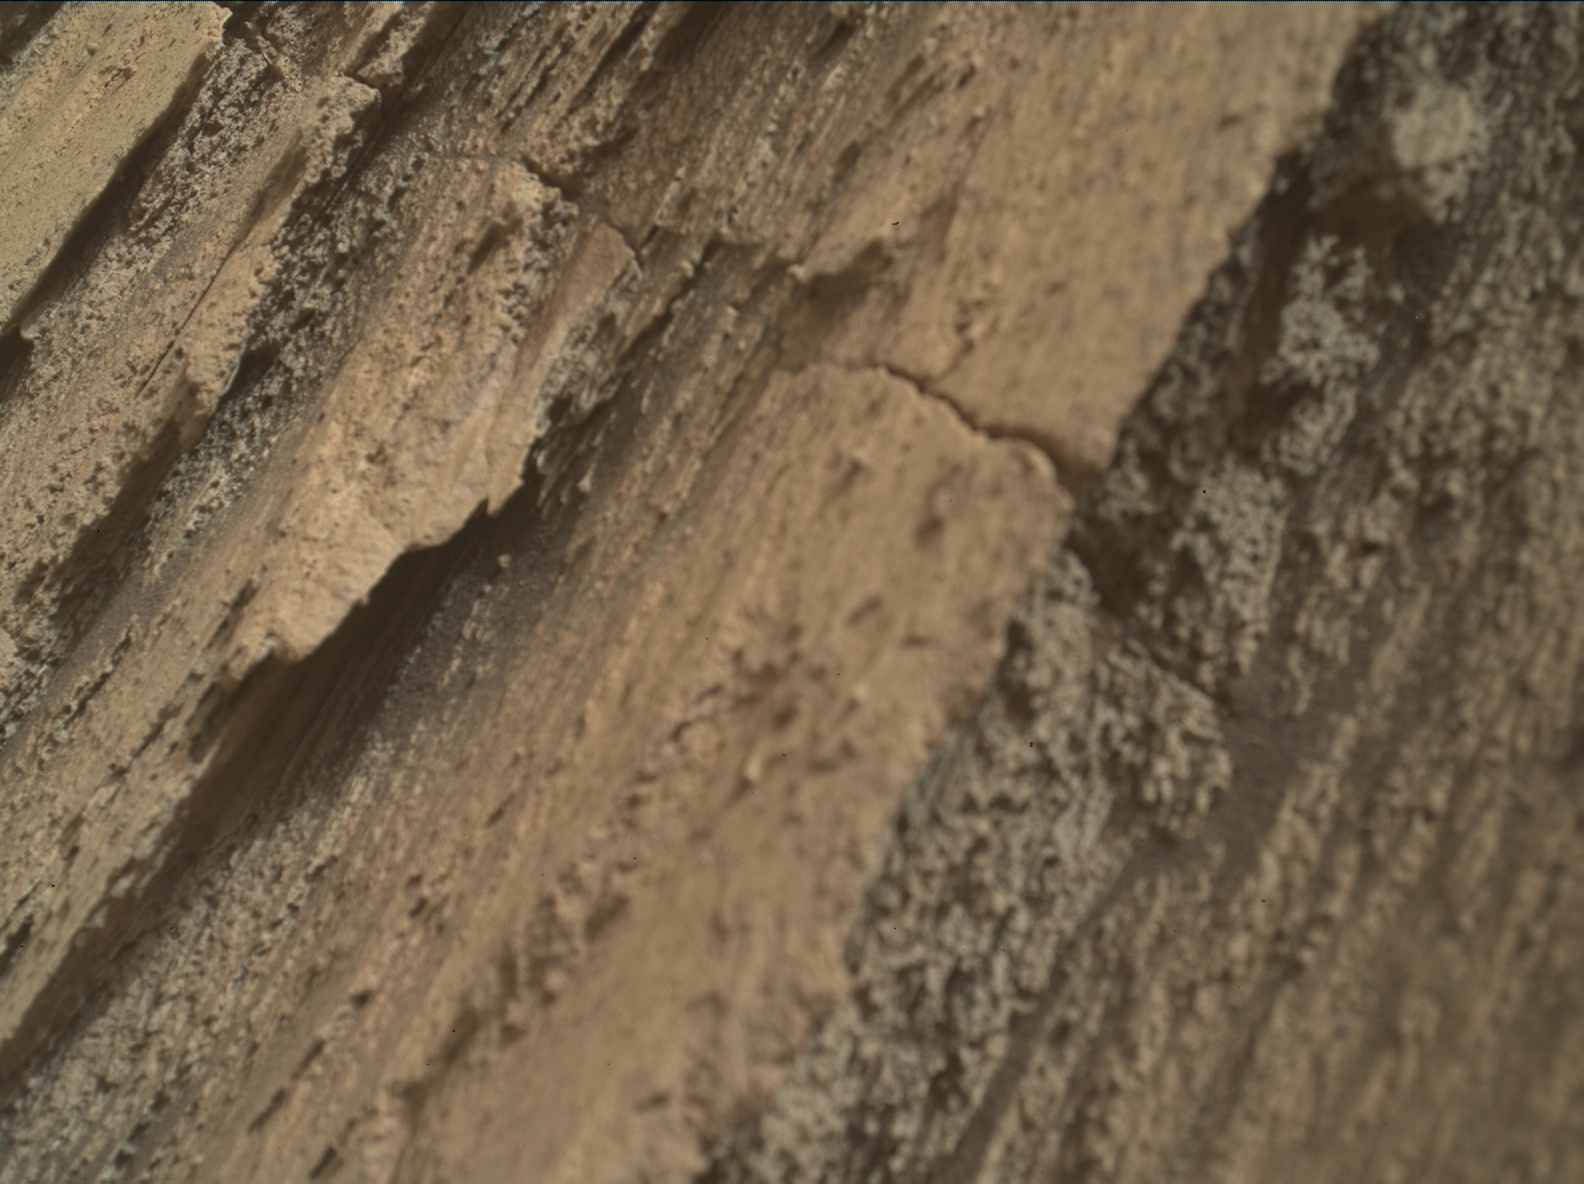 Nasa's Mars rover Curiosity acquired this image using its Mars Hand Lens Imager (MAHLI) on Sol 2581